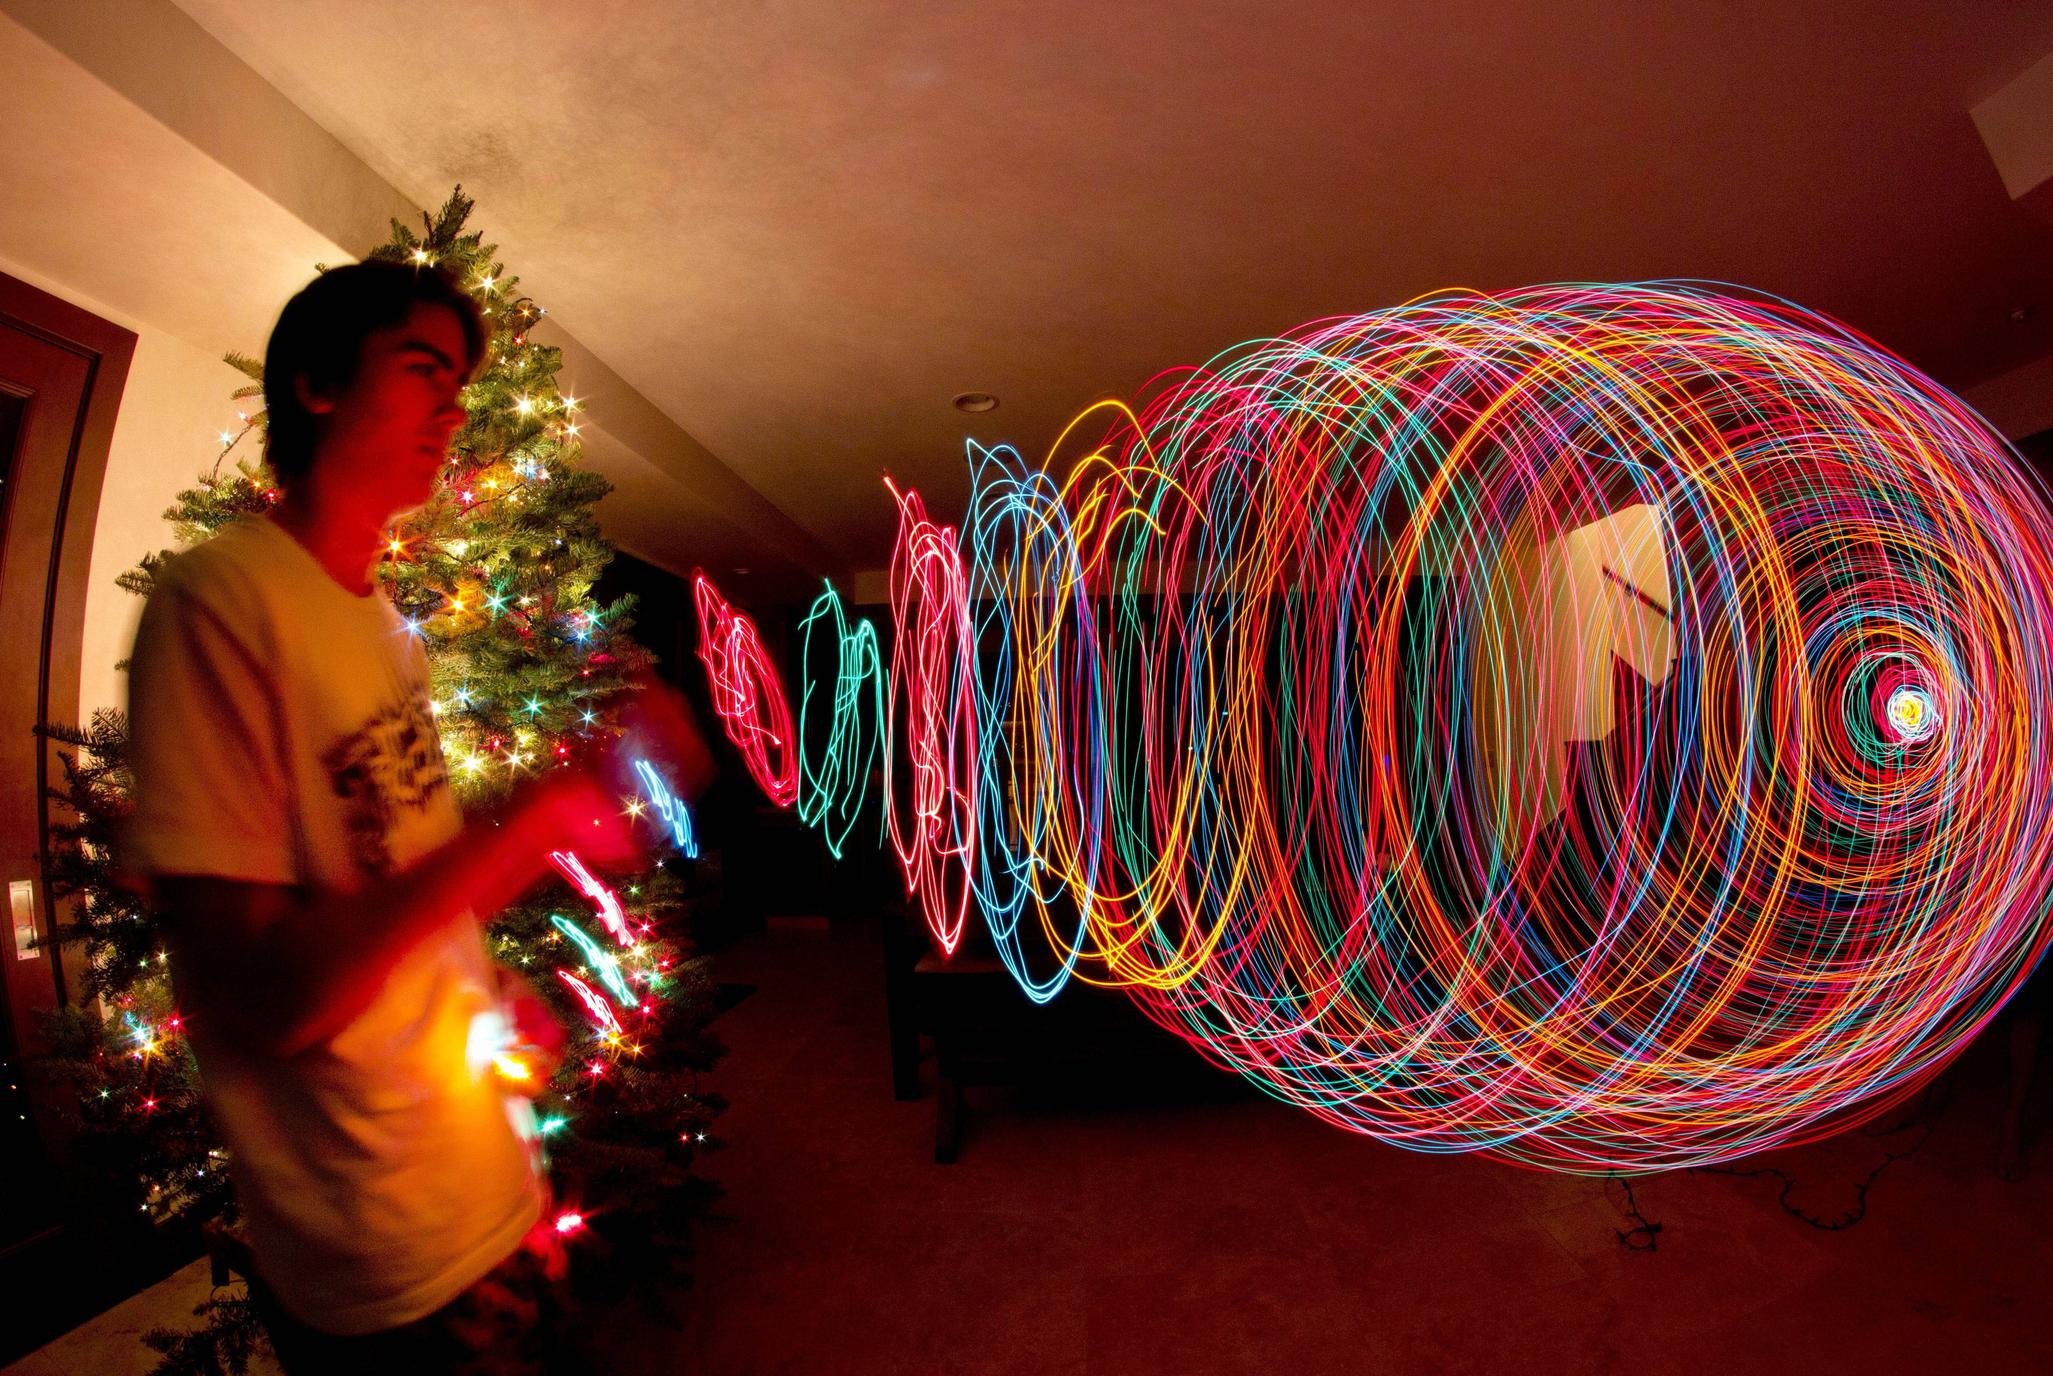 light-painting-spirales